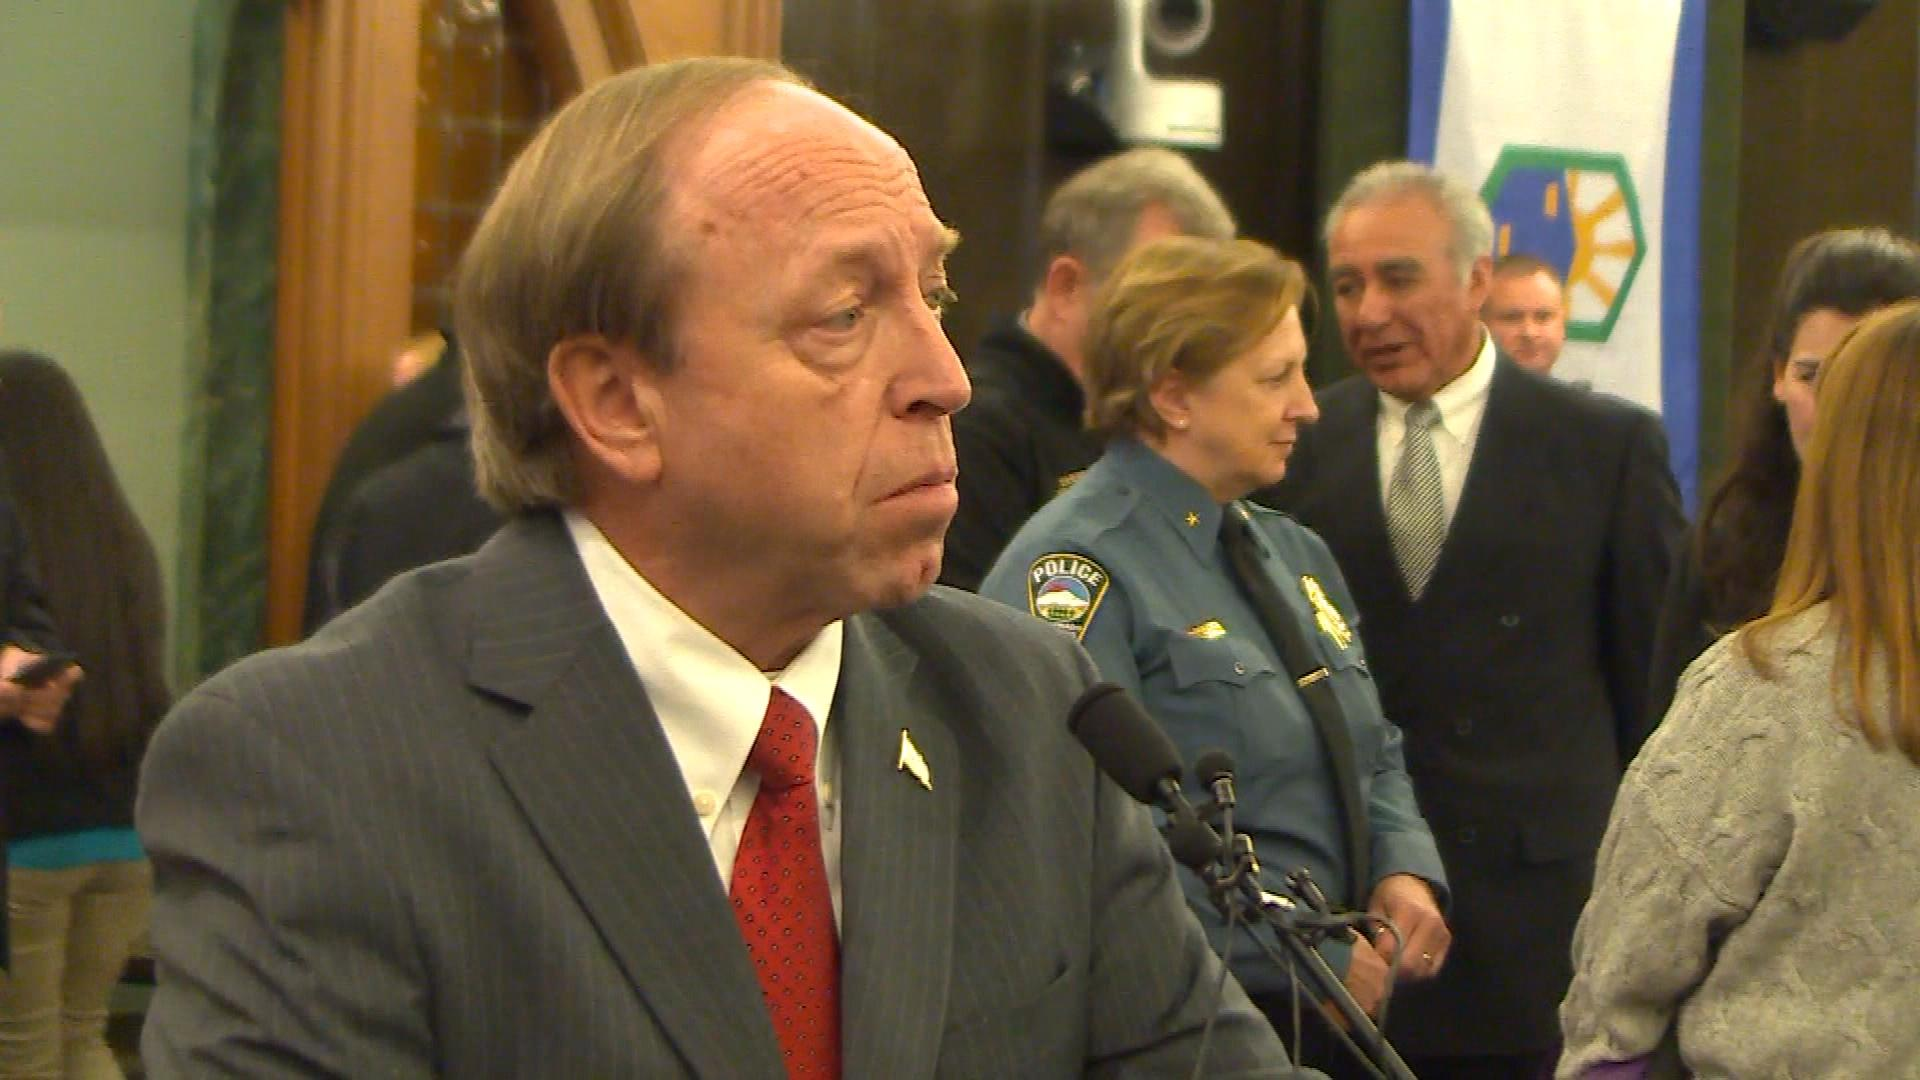 Former Attorney General and Colorado Springs Mayor John Suthers at the ceremony (credit: CBS)